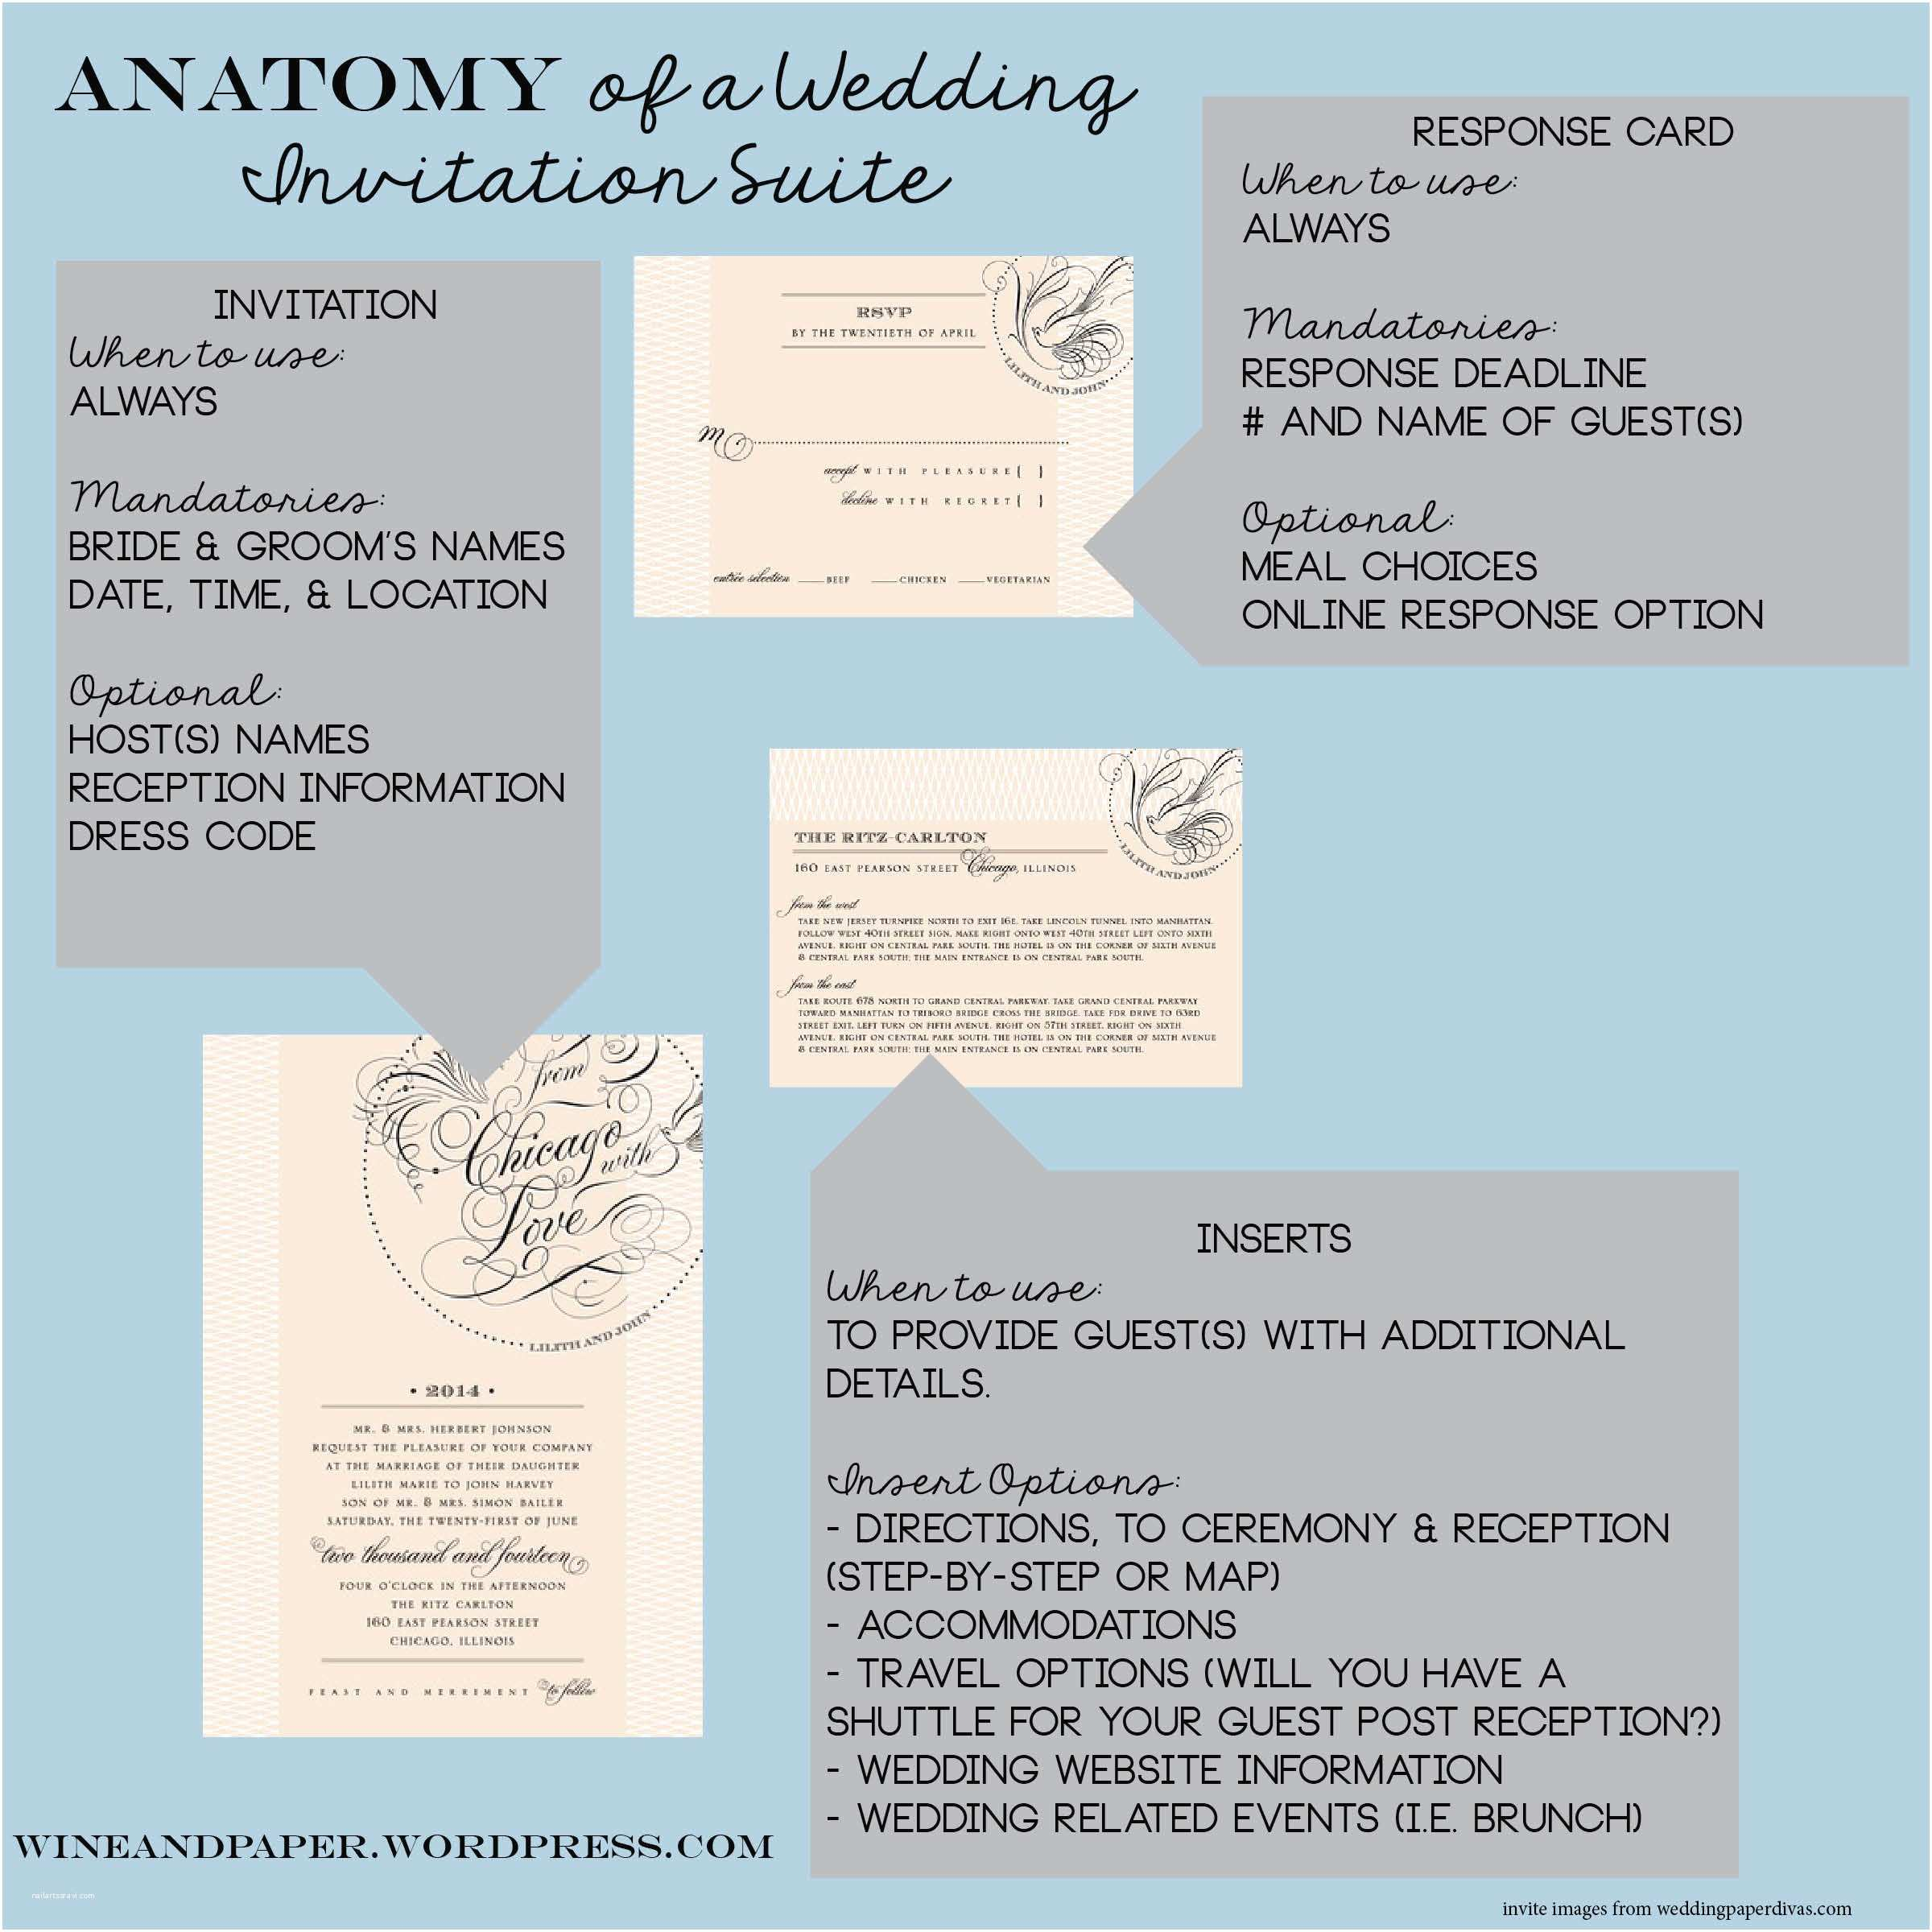 the anatomy of a wedding invitation suite